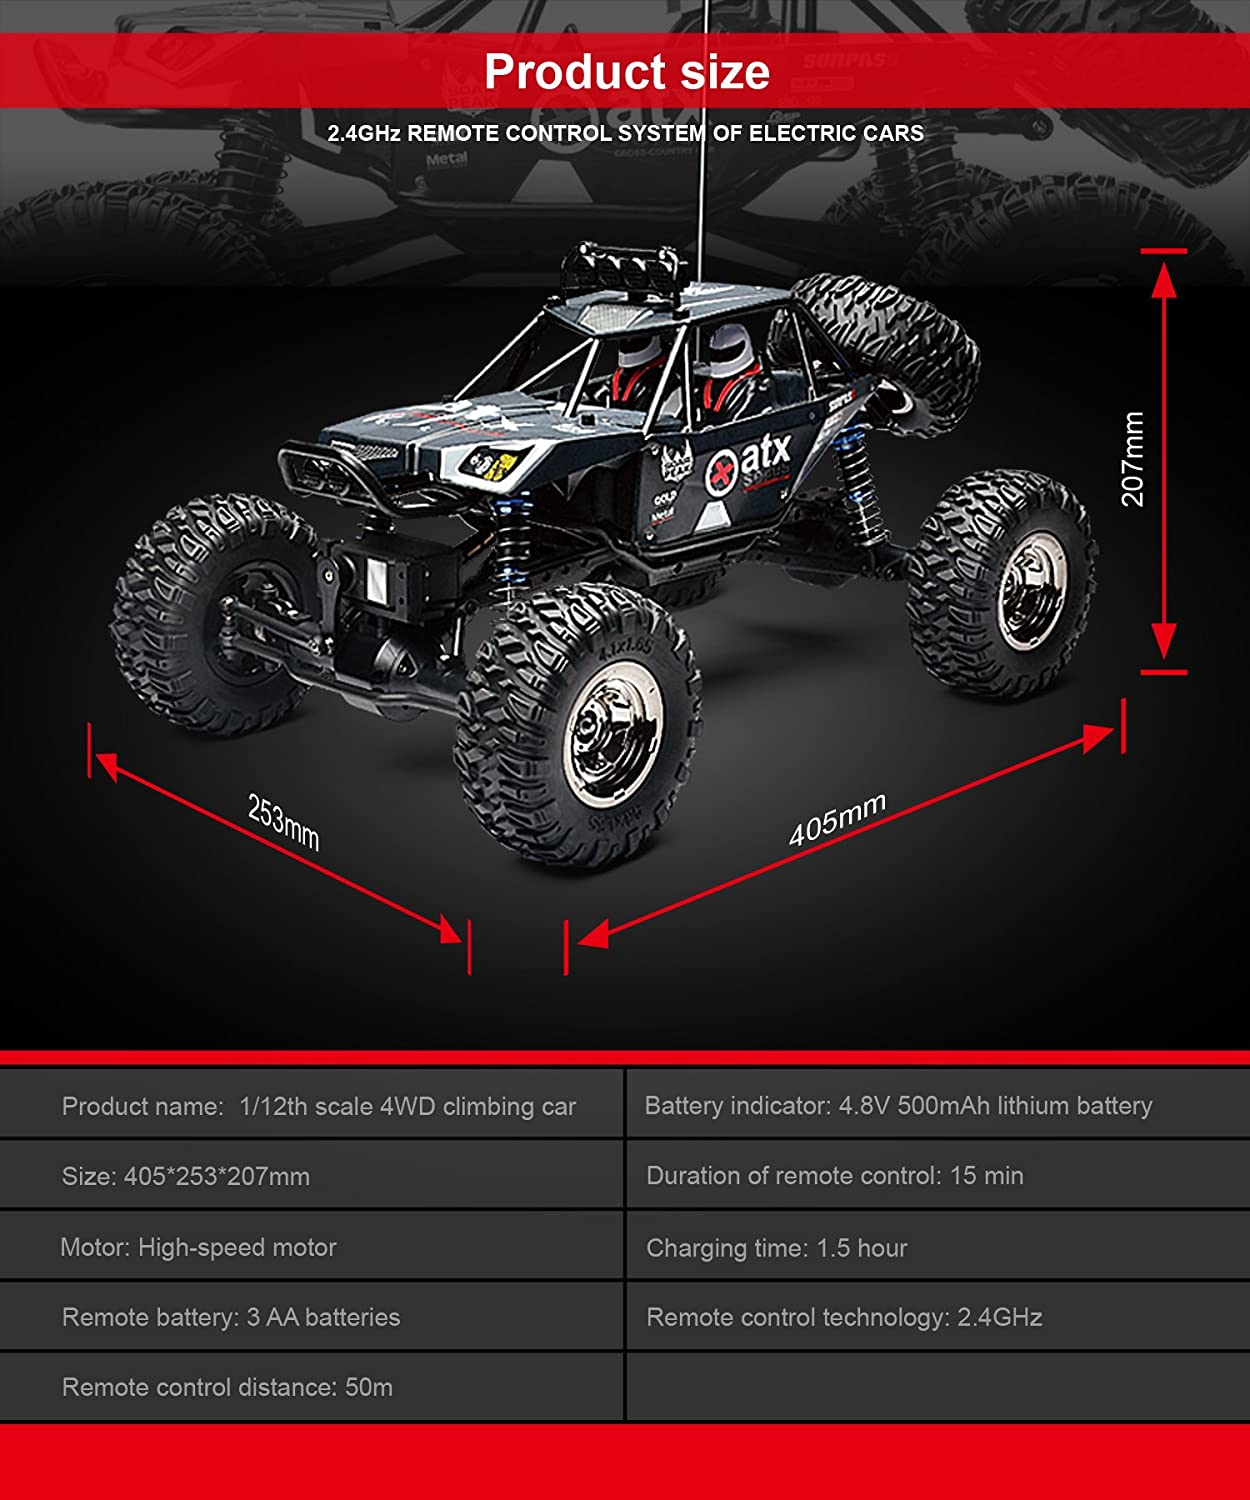 Demaxis 4x4 Offroad Remote Control Car Vehicles Rtr 4wd Brand Name Waterproof Gptoys Item Circuit Board Rc Cars Rock Crawler Monster Truck 1 12 Scale Outdoor Black Toys Games